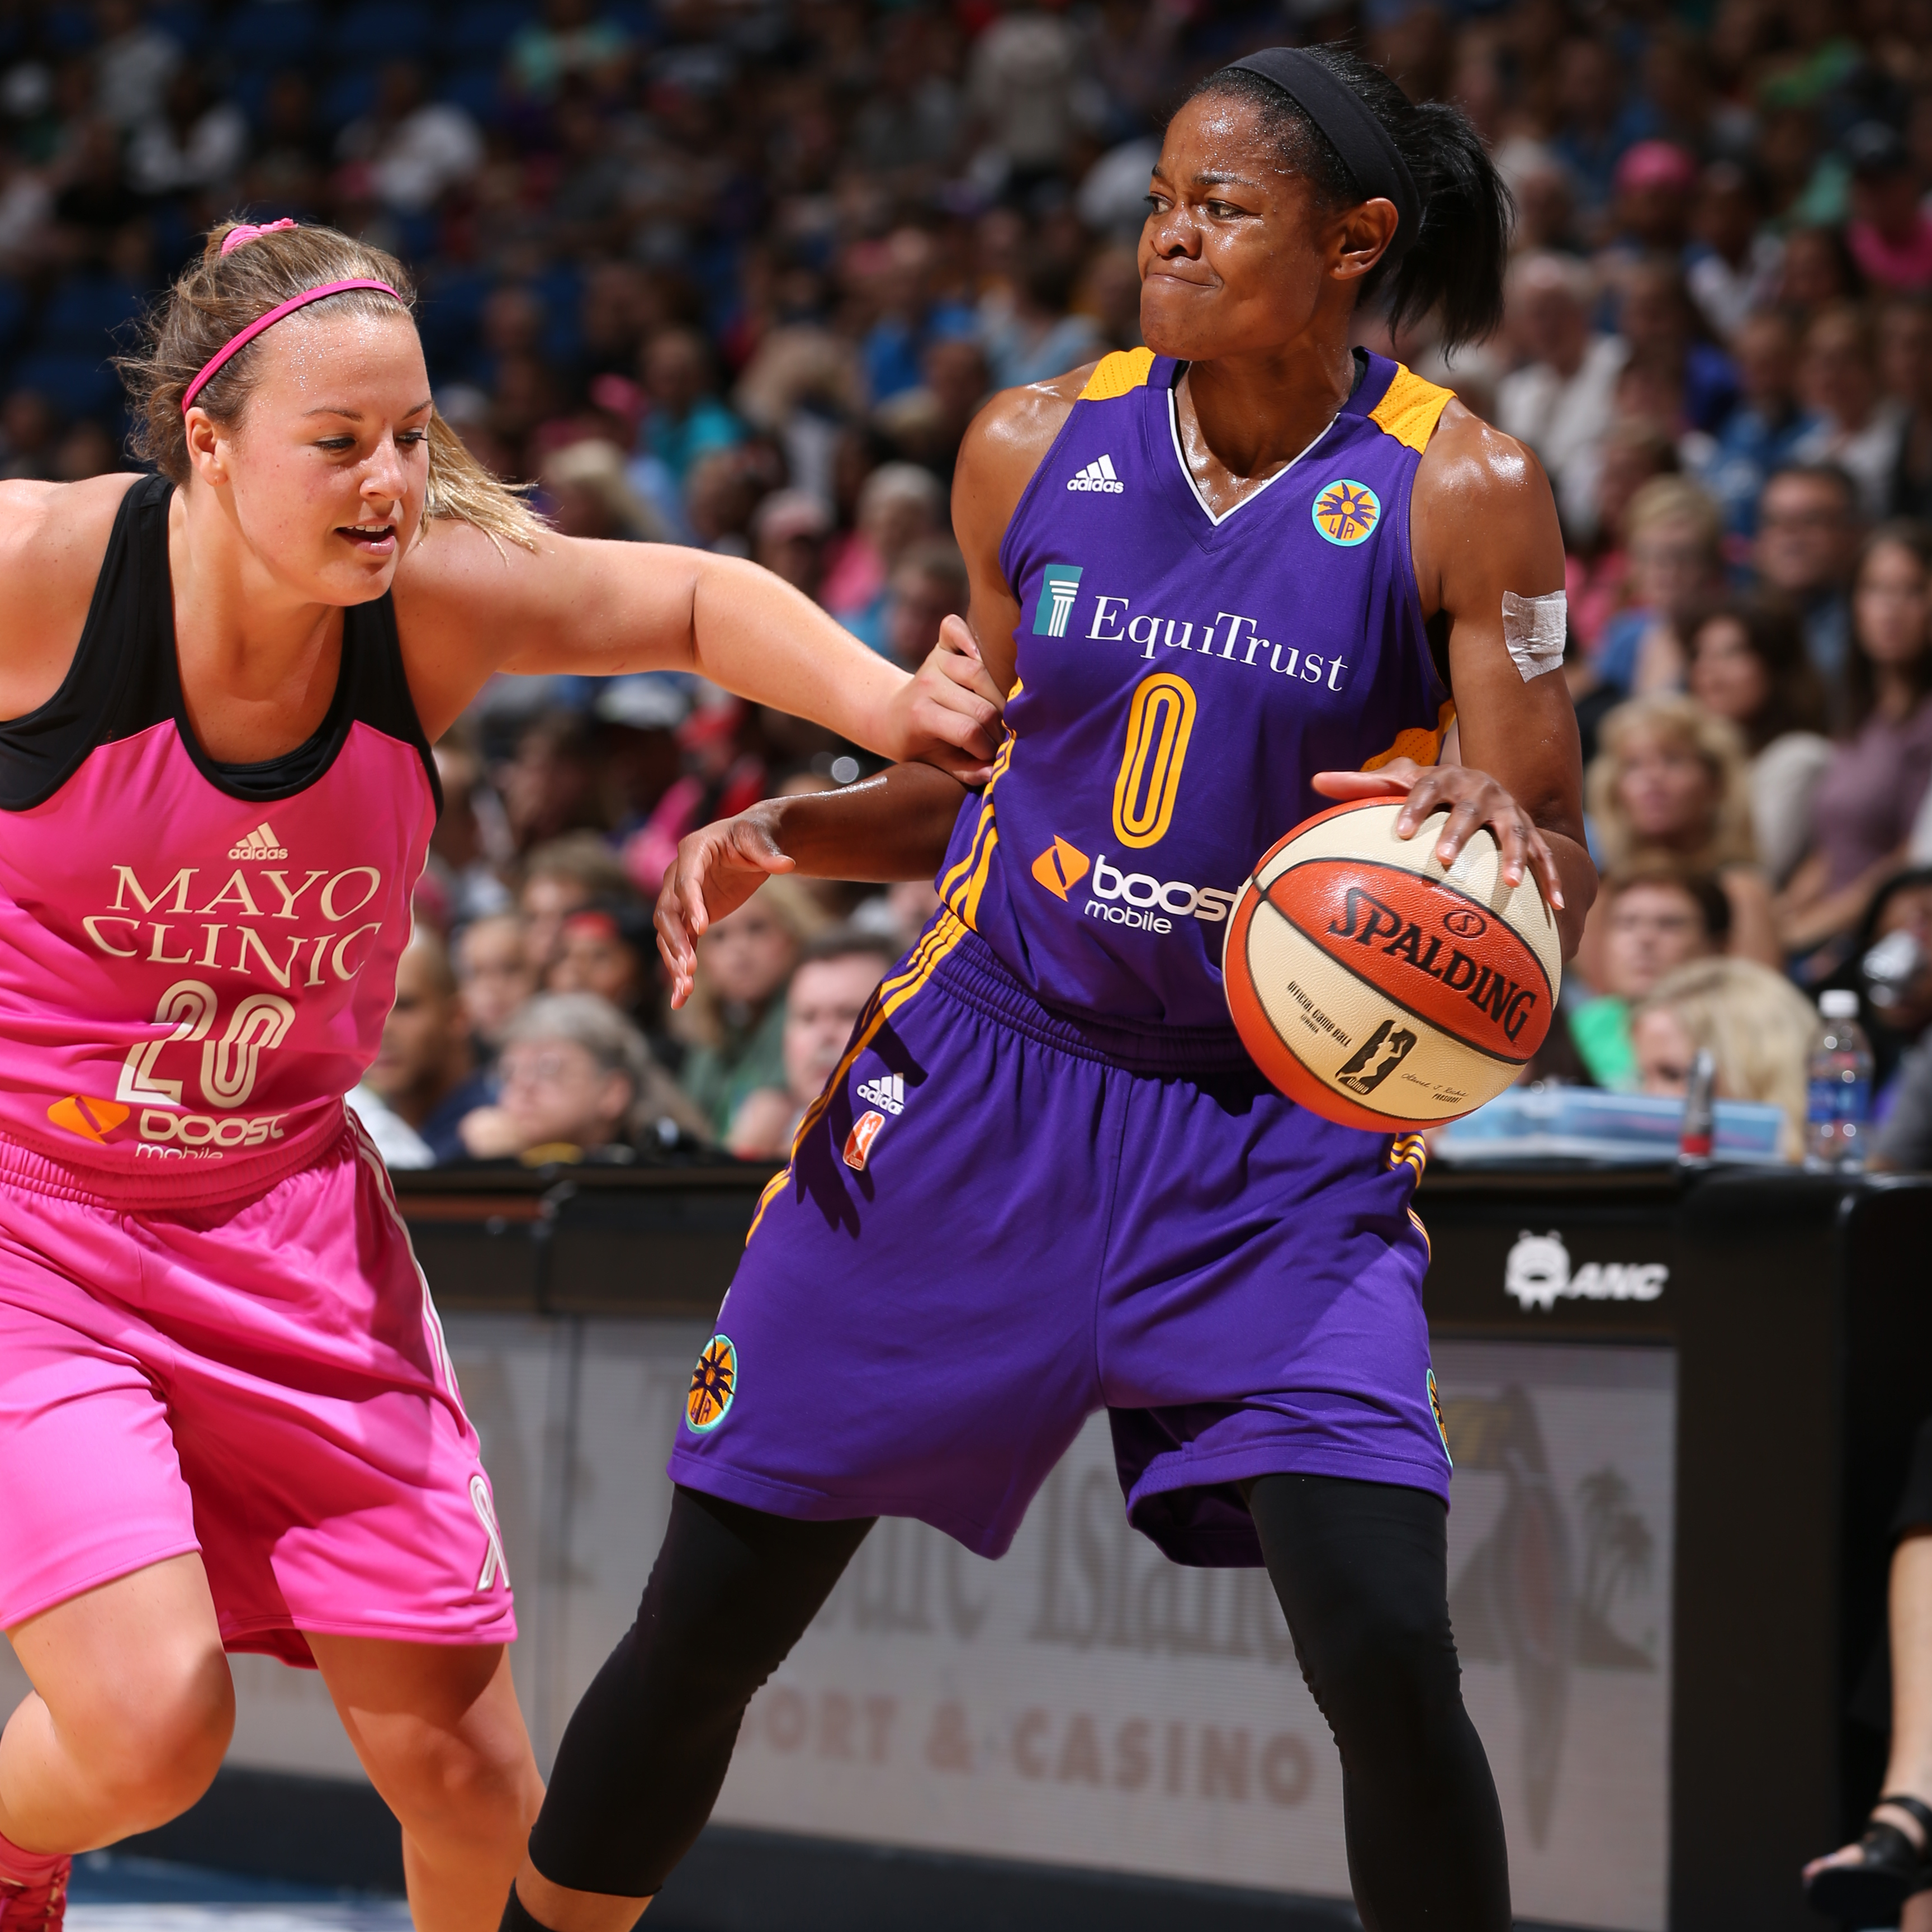 Sparks guard Alana Beard was held to a very quiet night against the Lynx. Beard finished with just two points on 1-of-3 shooting (33 percent) in just eight minutes of play.